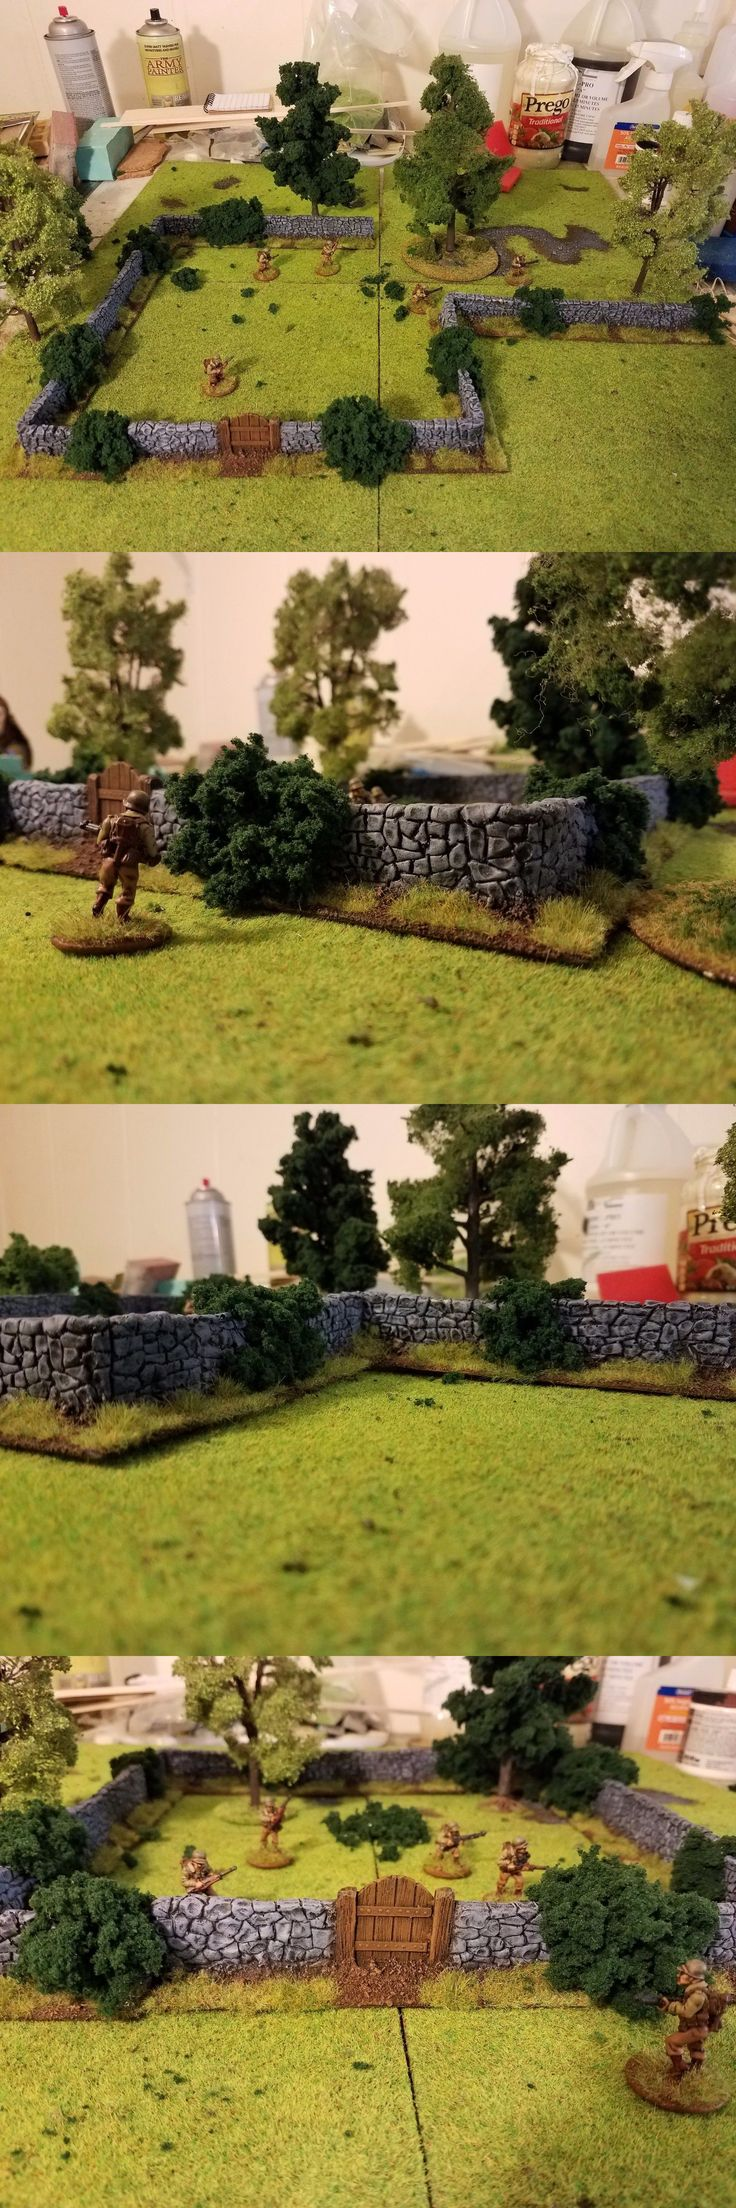 628 best terrain and scenery 177640 images on pinterest